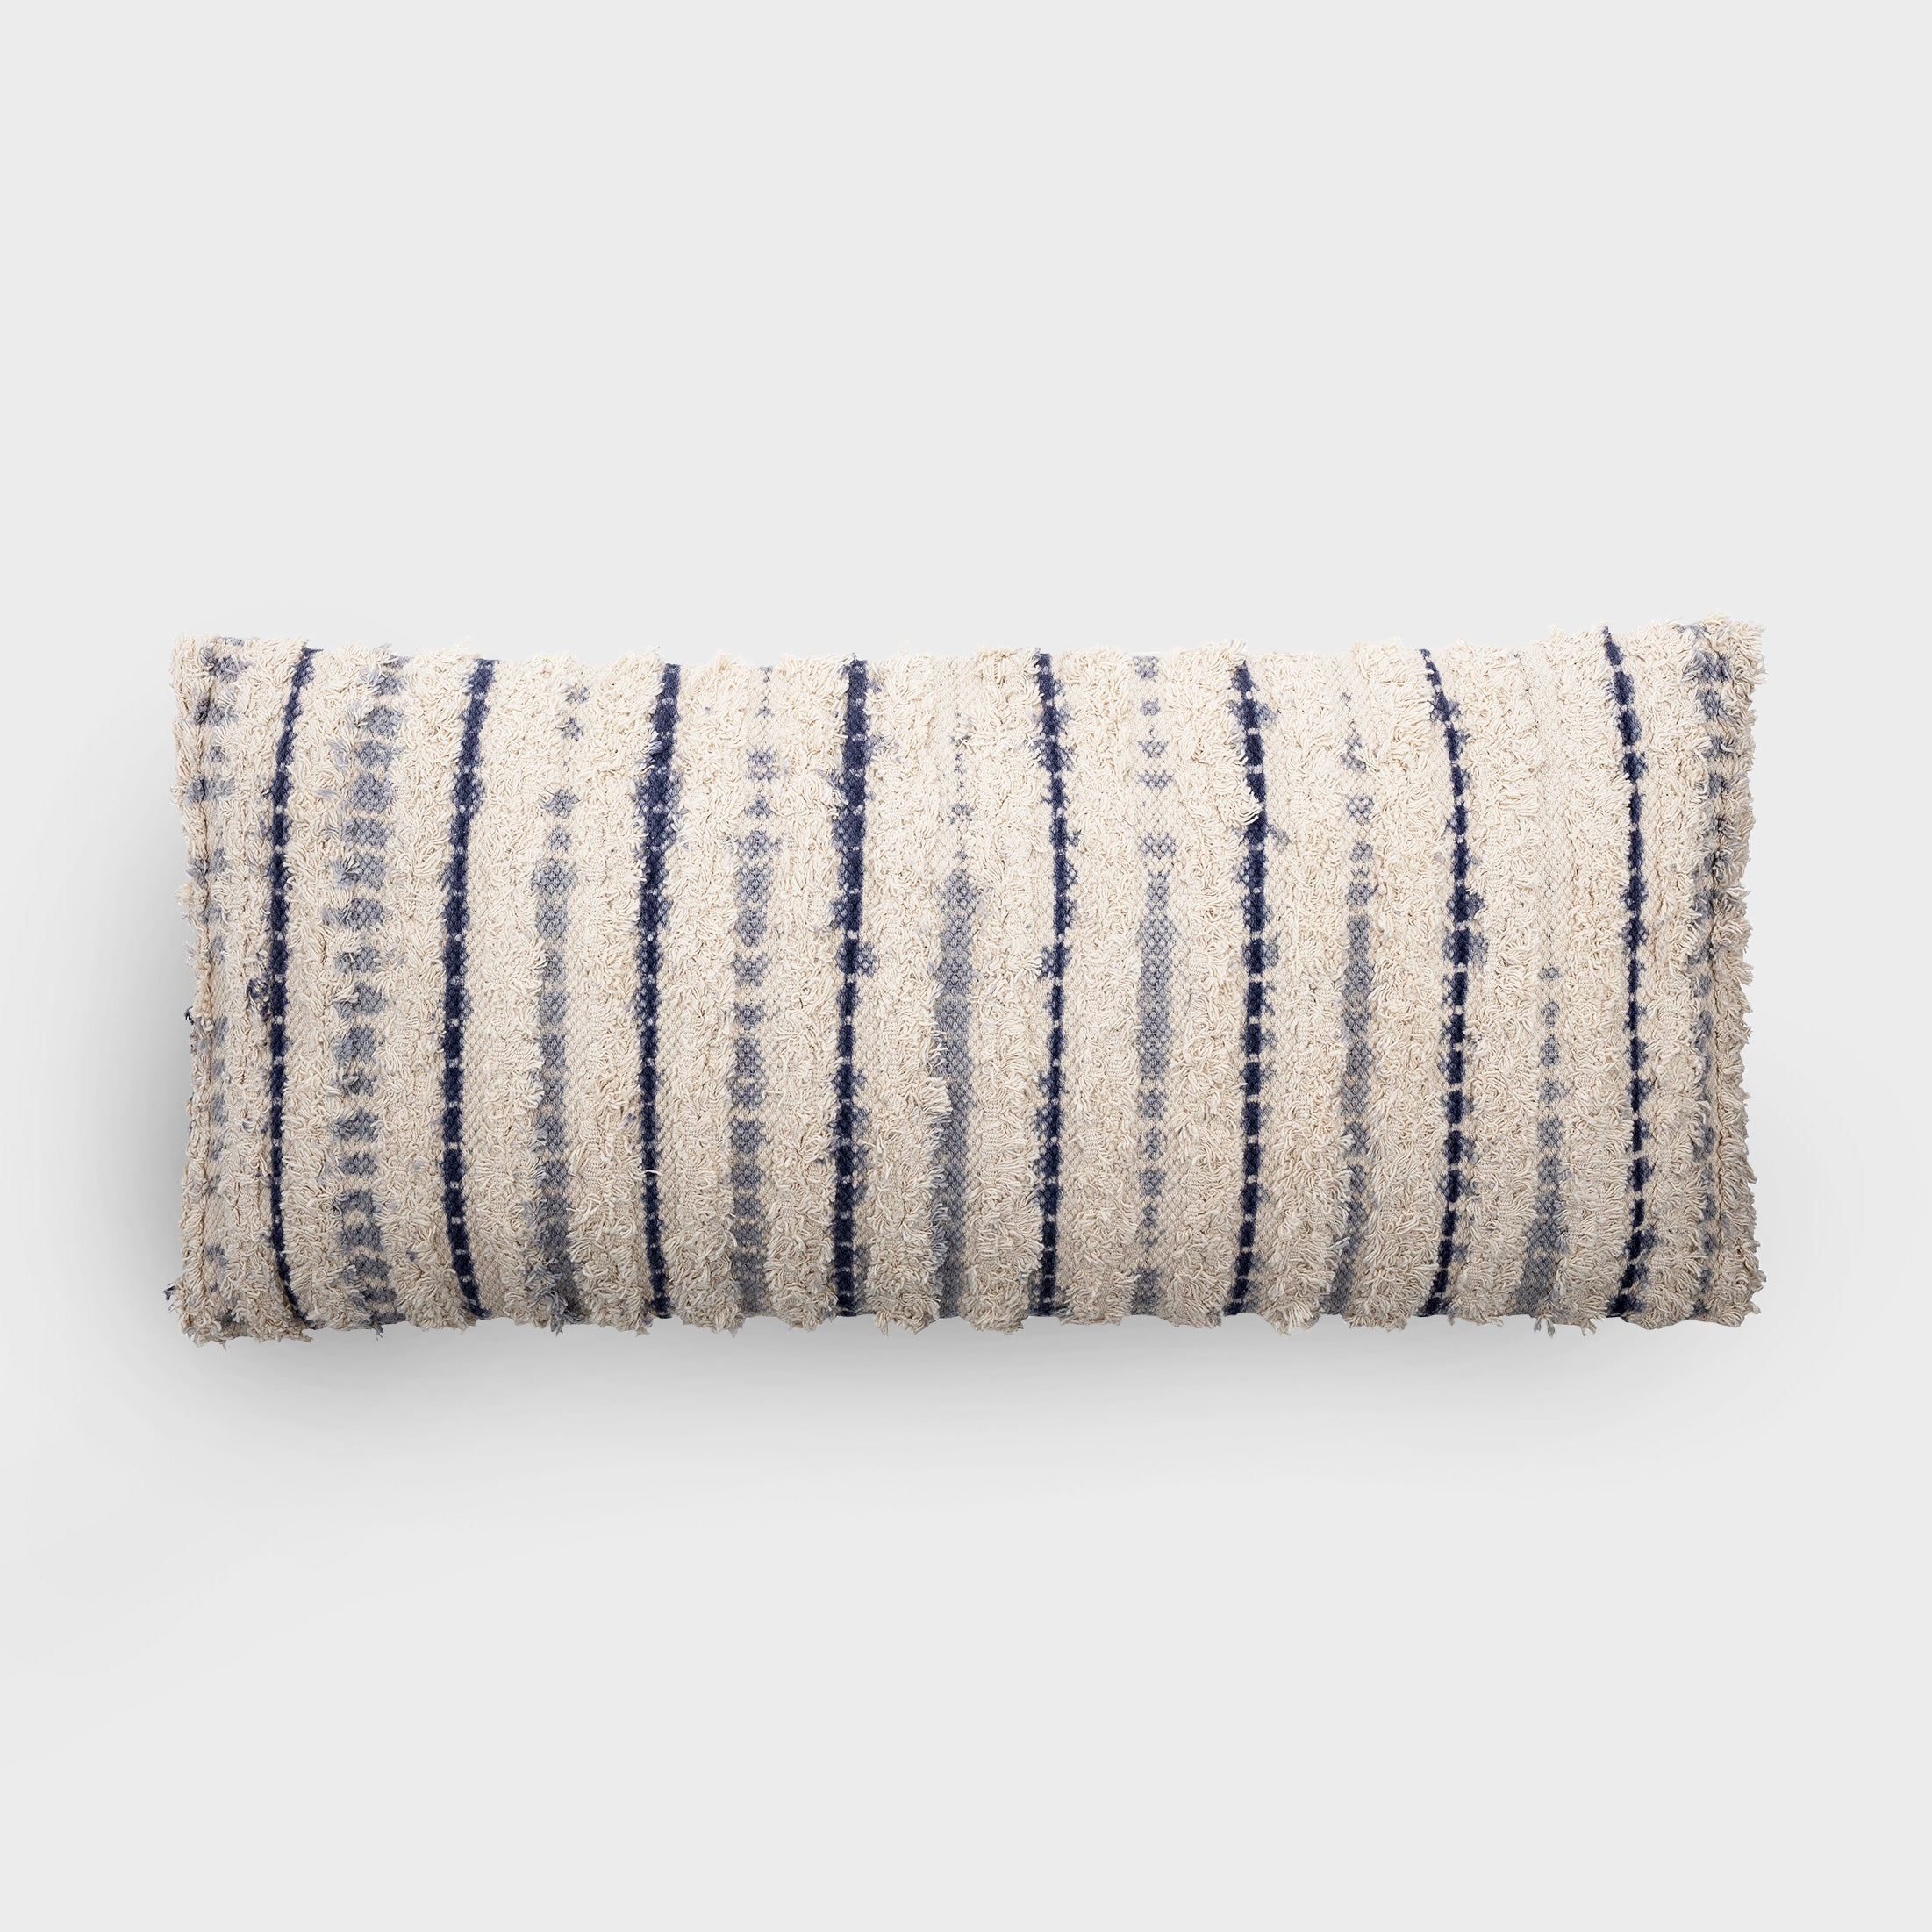 Large rectangle woven cotton cushion